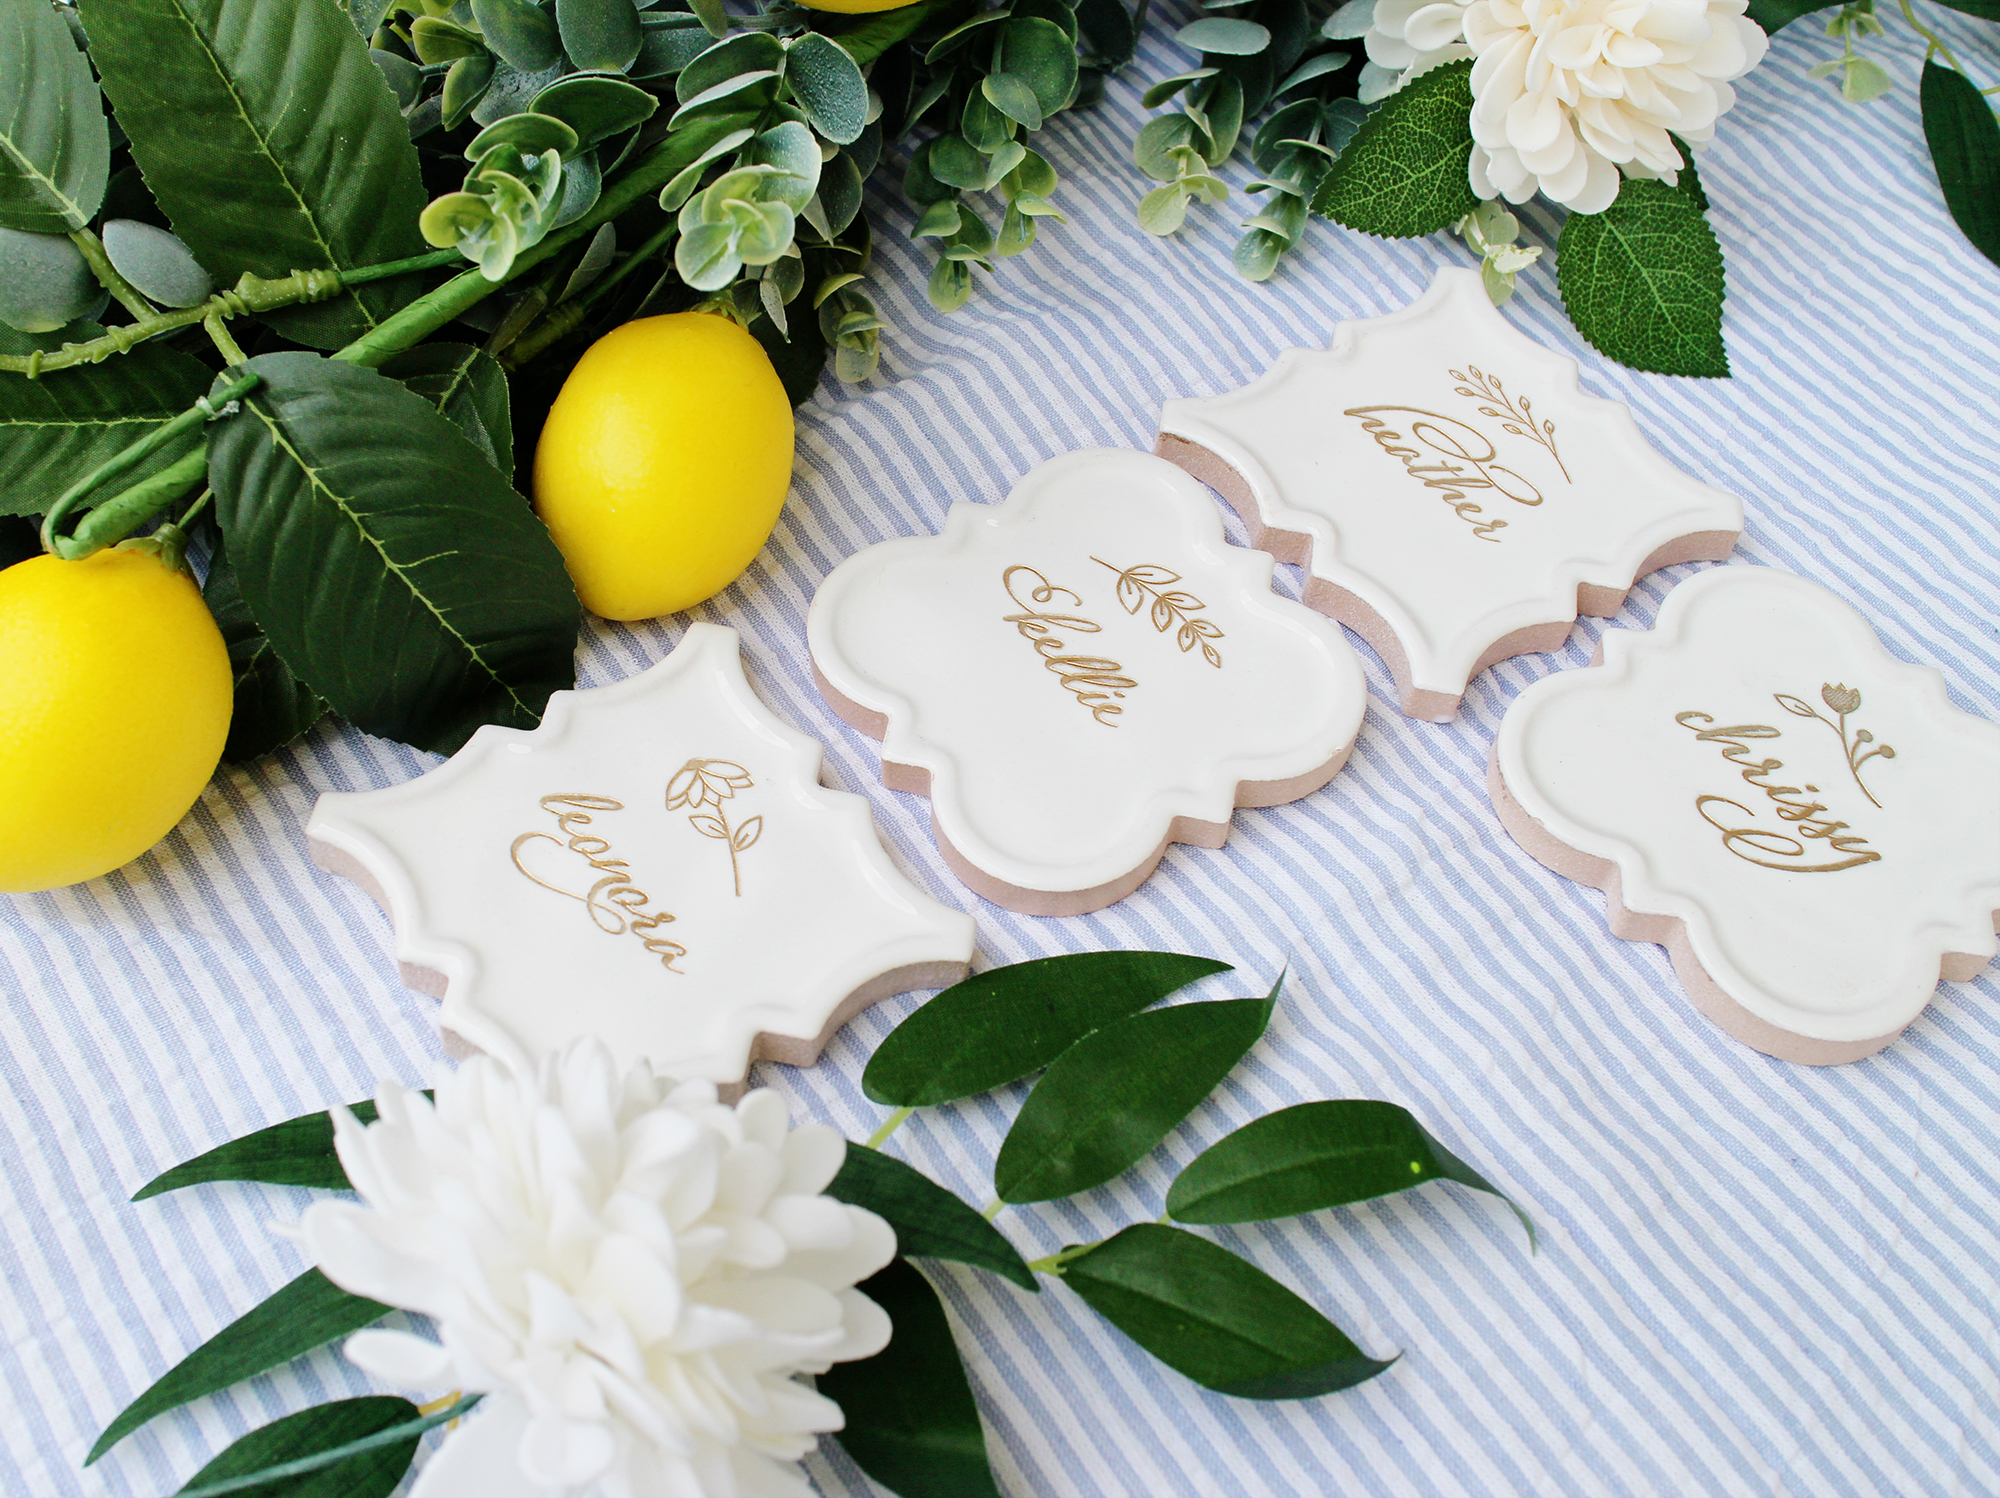 beautiful preppy seersucker southern tile name tags white and gold place card escort card seating chart boho wedding boho bridal shower yellow heart art etsy.jpg